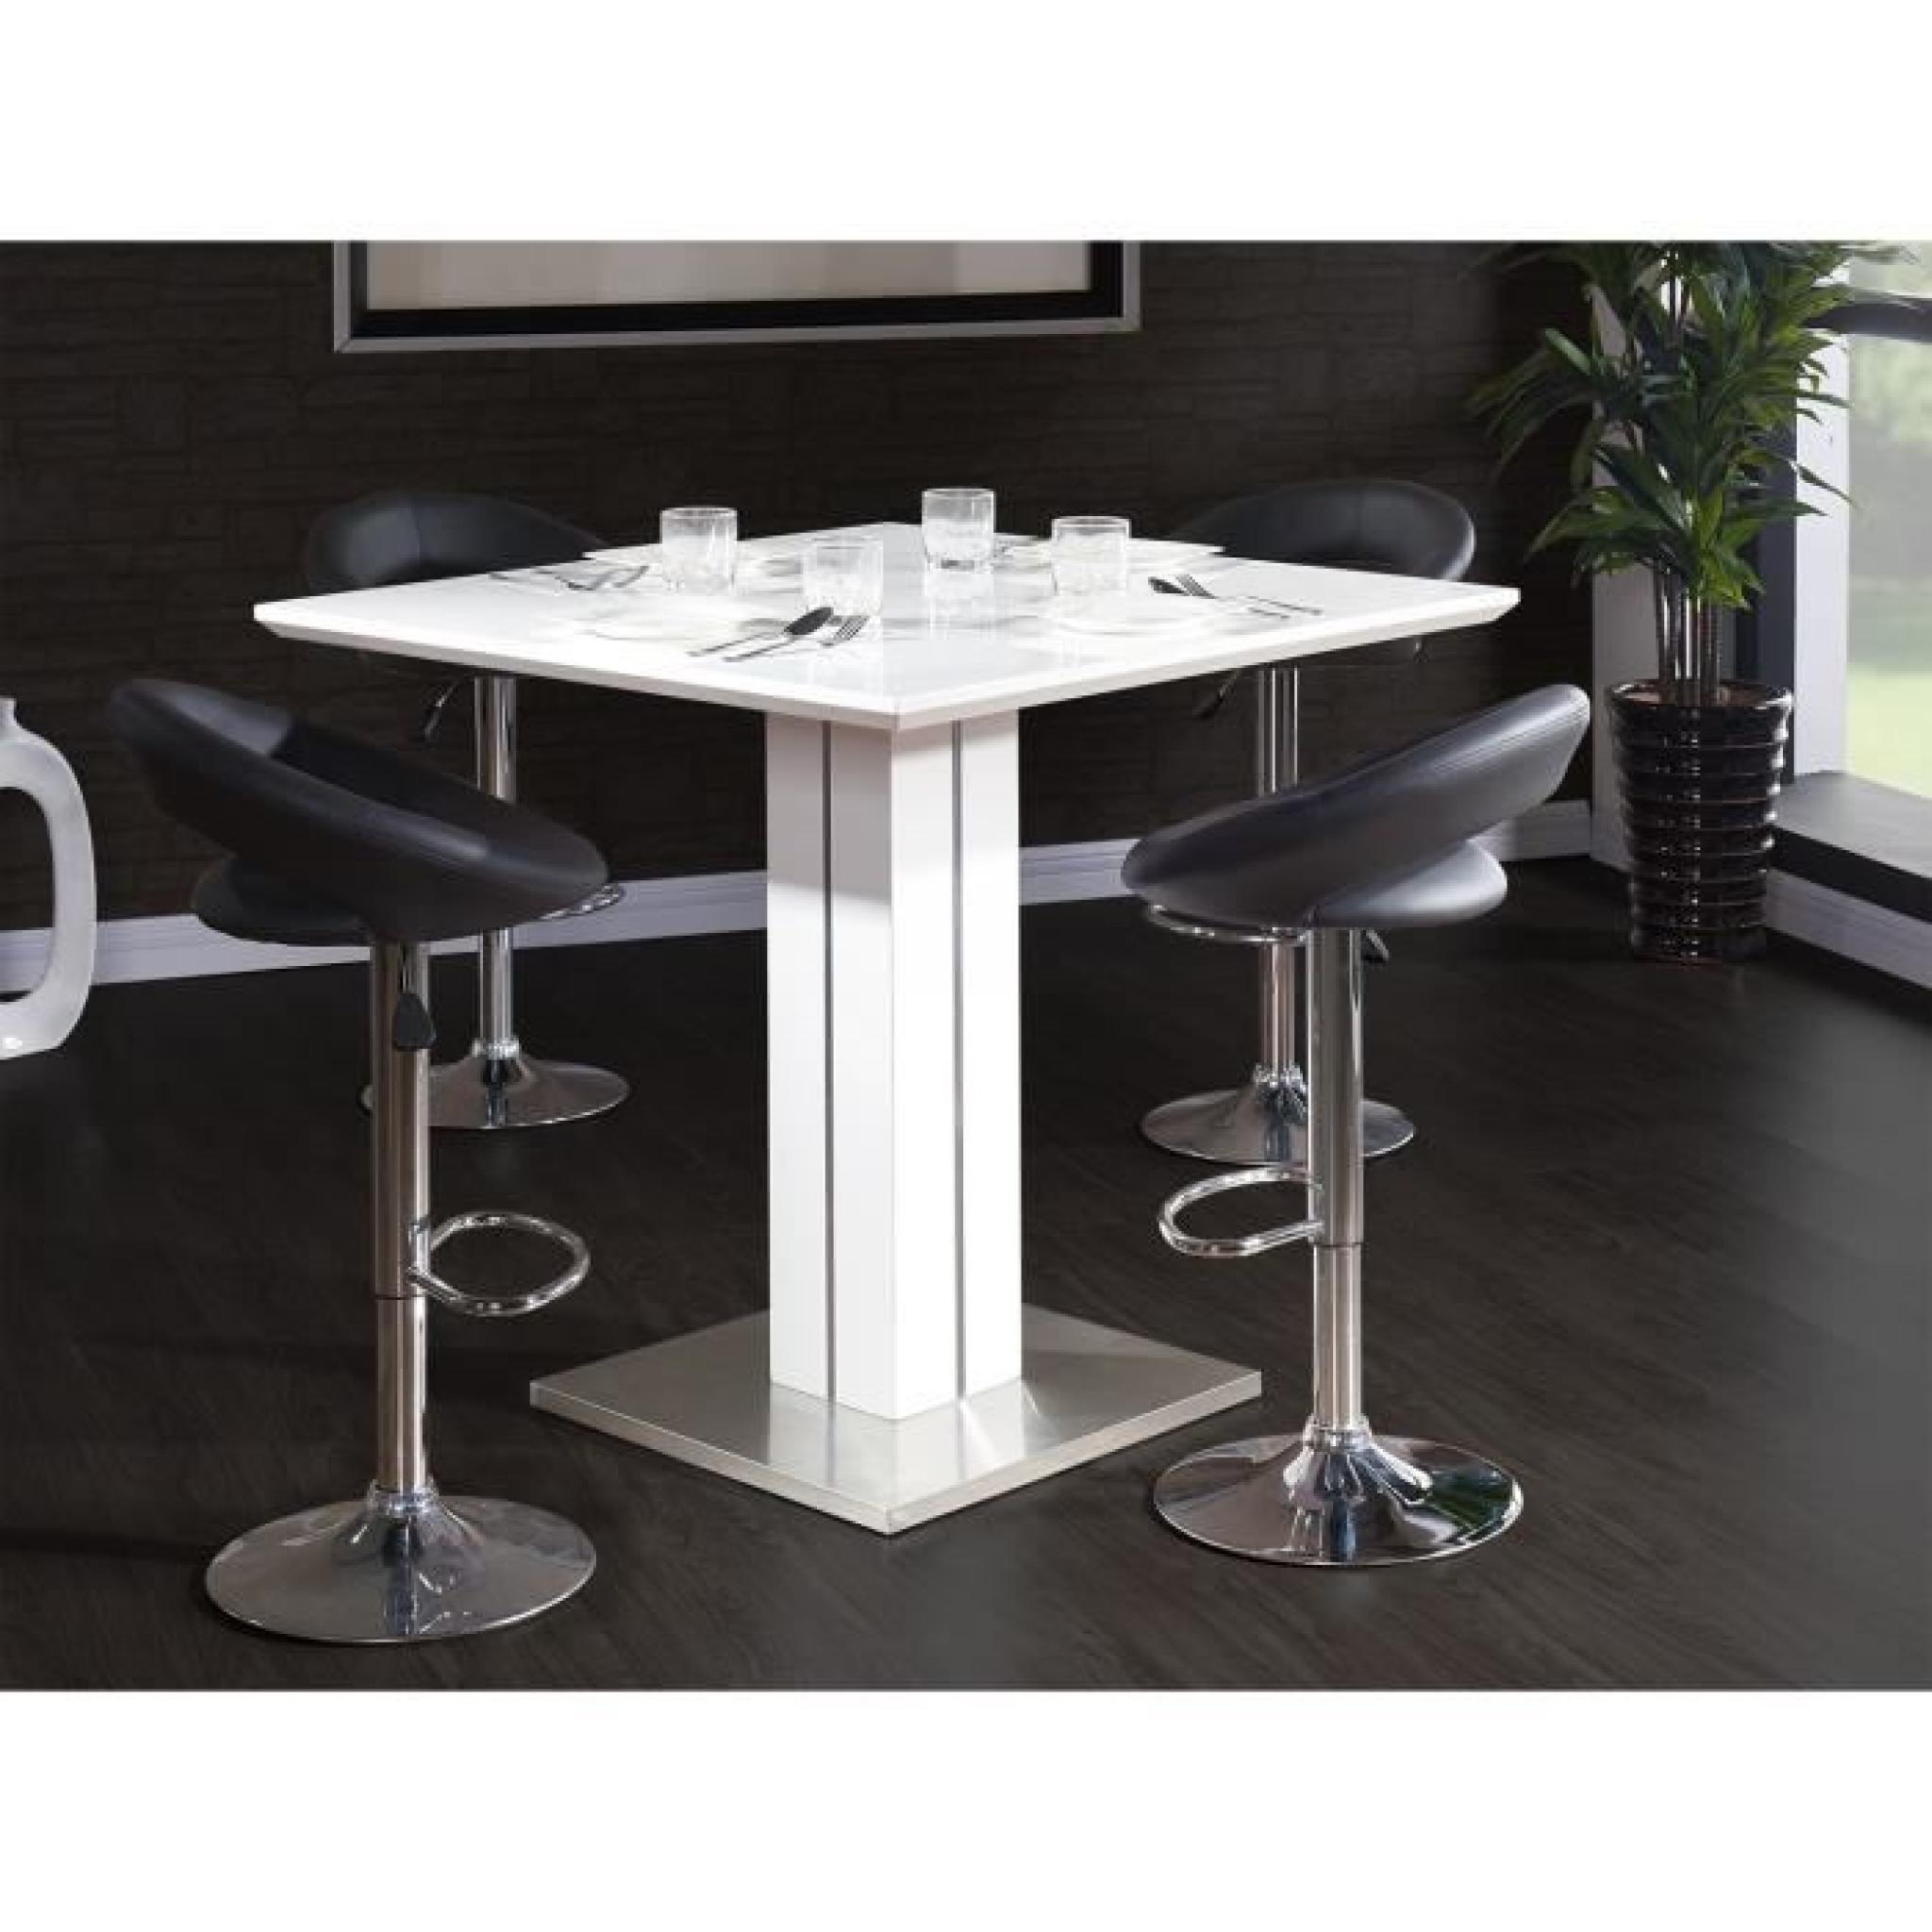 Table de salle a manger blanc laqu pas cher table de for Table salle a manger conforama